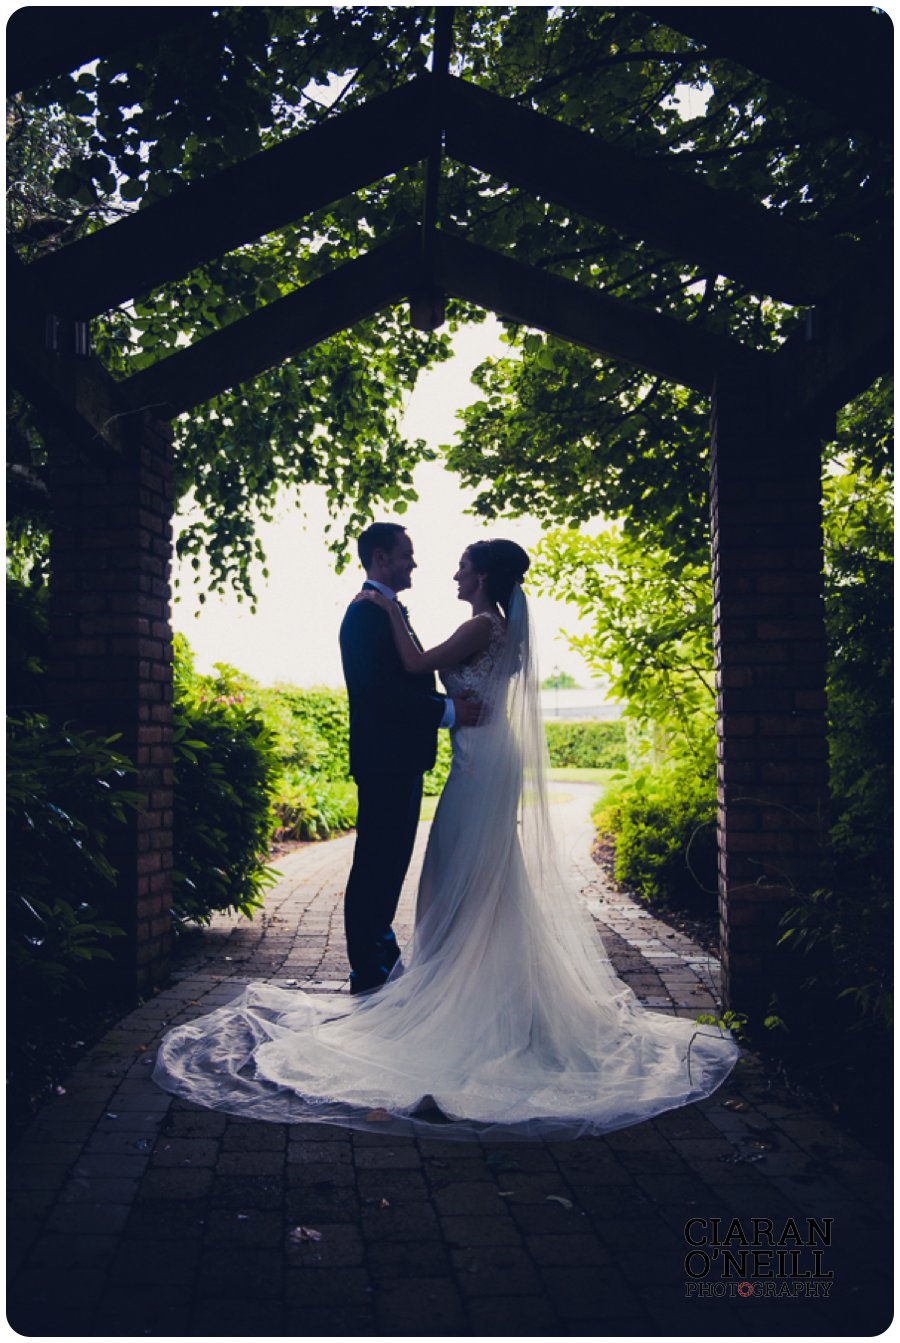 Roisin & Brian's wedding at Slieve Russell Hotel by Ciaran O'Neill Photography 13